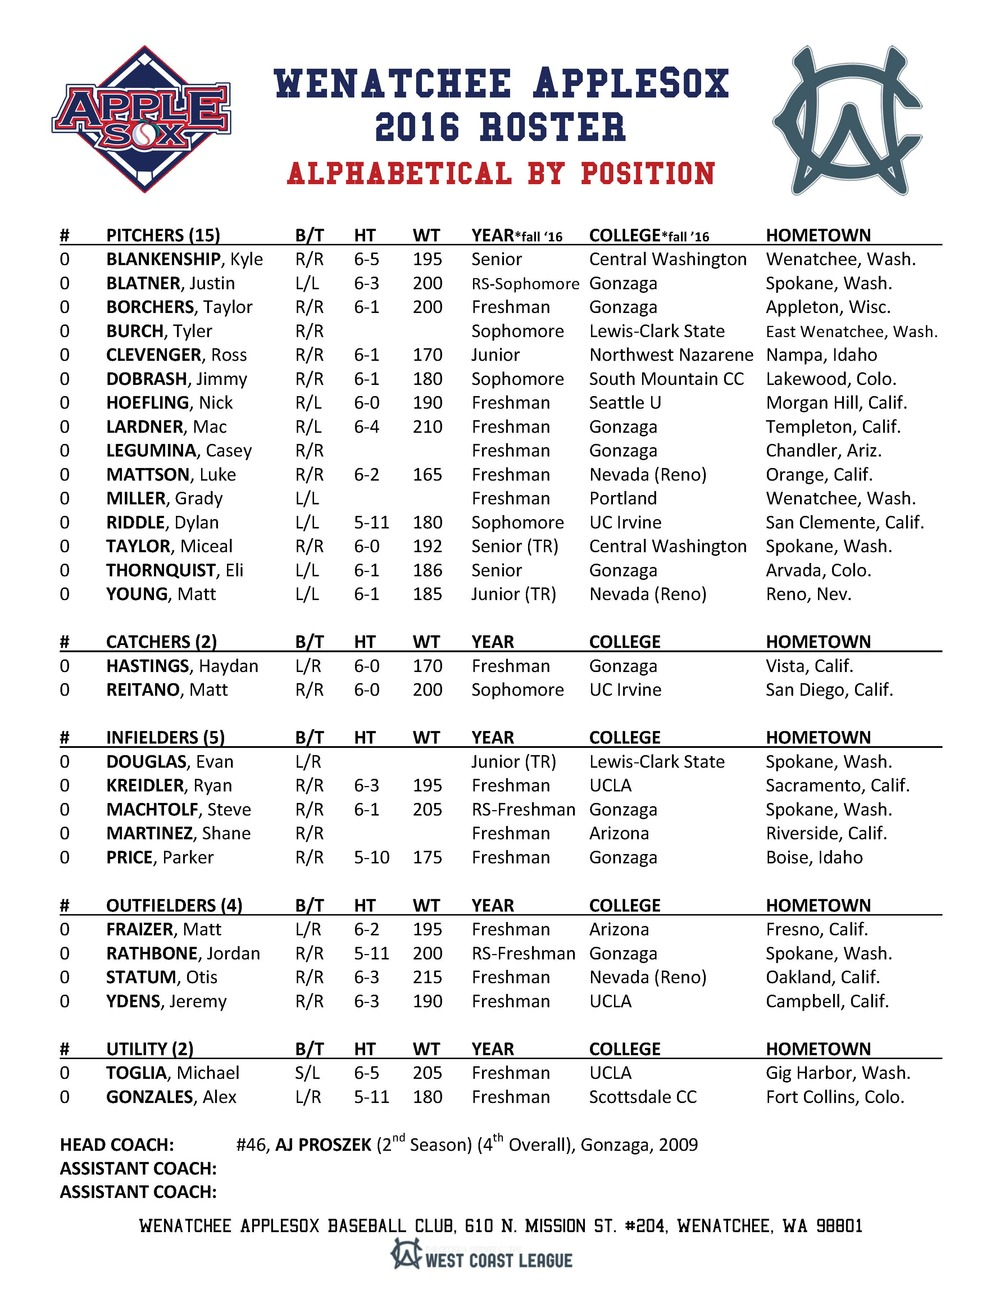 The Wenatchee AppleSox final 2016 pre-season roster features 28 players from Washington, Idaho, Oregon, California, Arizona, Nevada, Colorado, and Wisconsin.